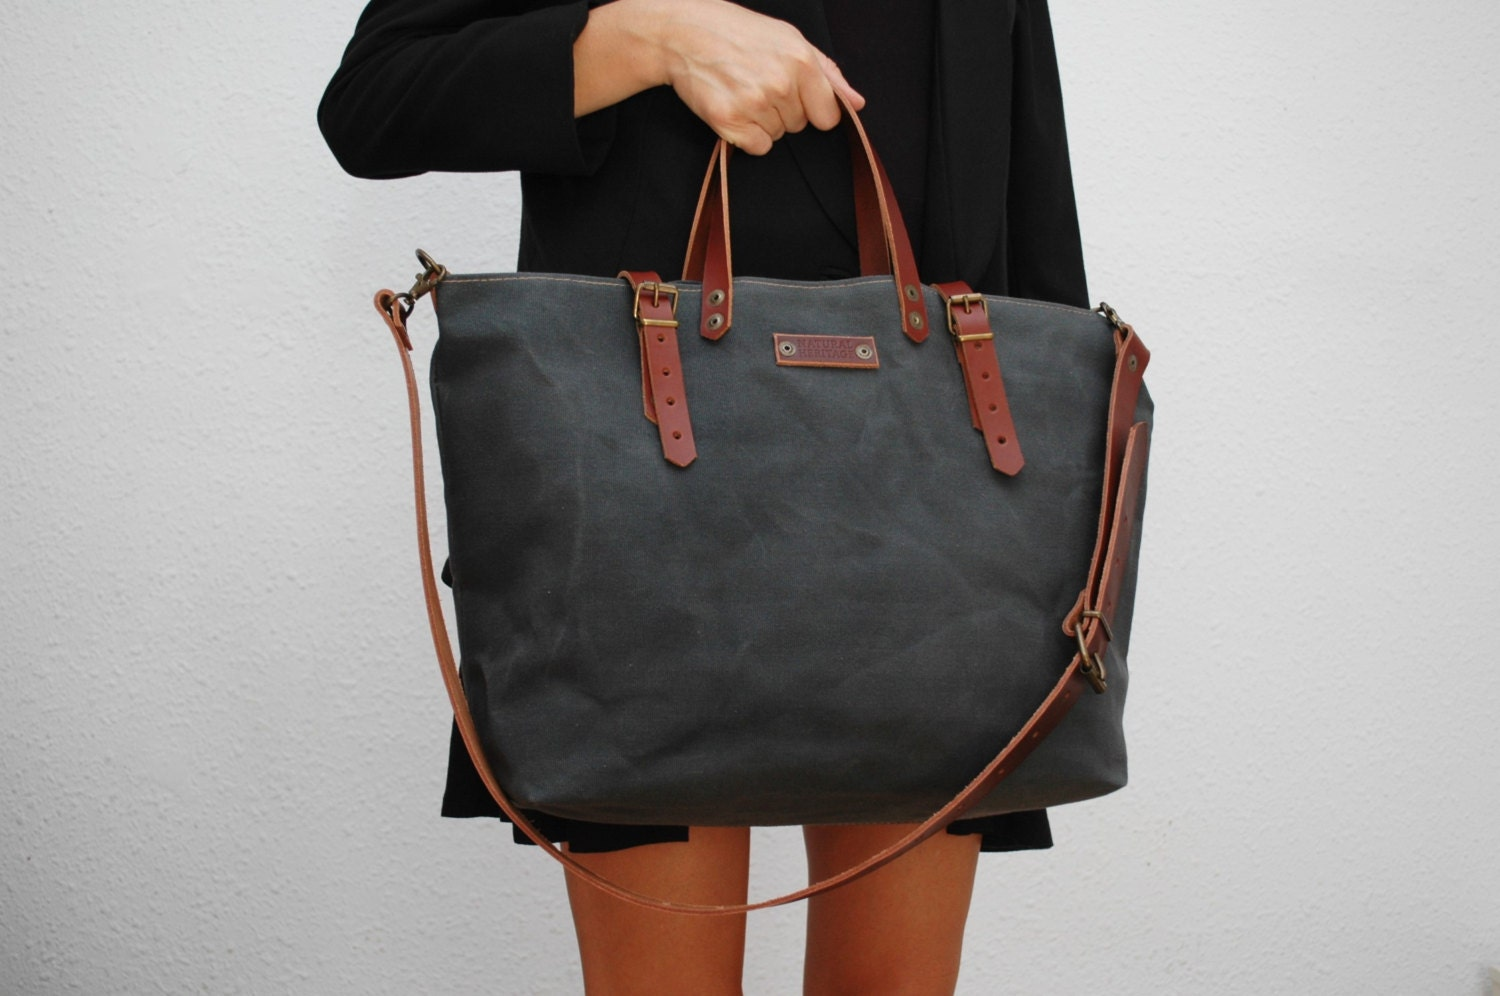 waxed canvas bag /tote bag/with leather handles and